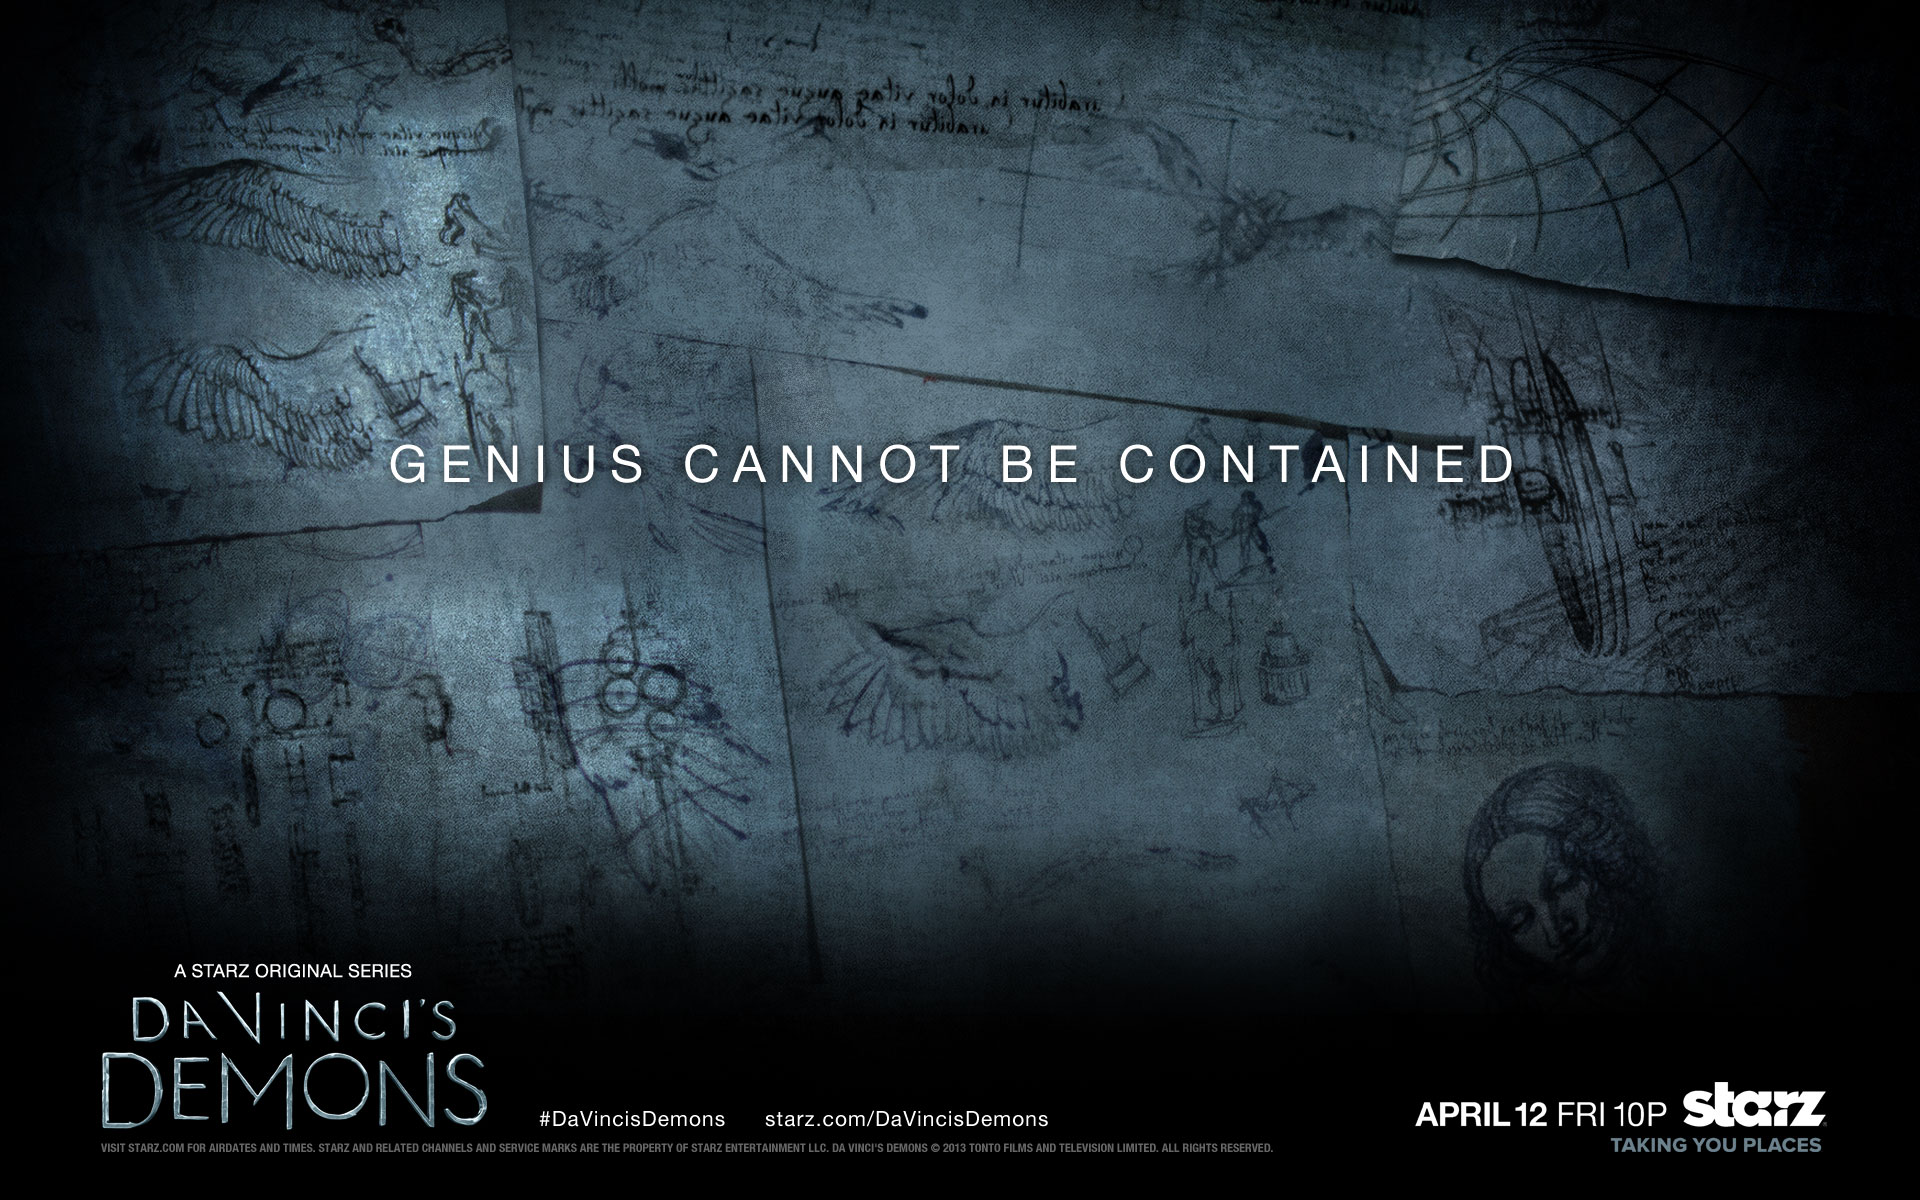 Da Vinci s Demons da vincis demons 34231716 1920 1200 Download Da Vincis Demons S02E04 Legenda Torrent